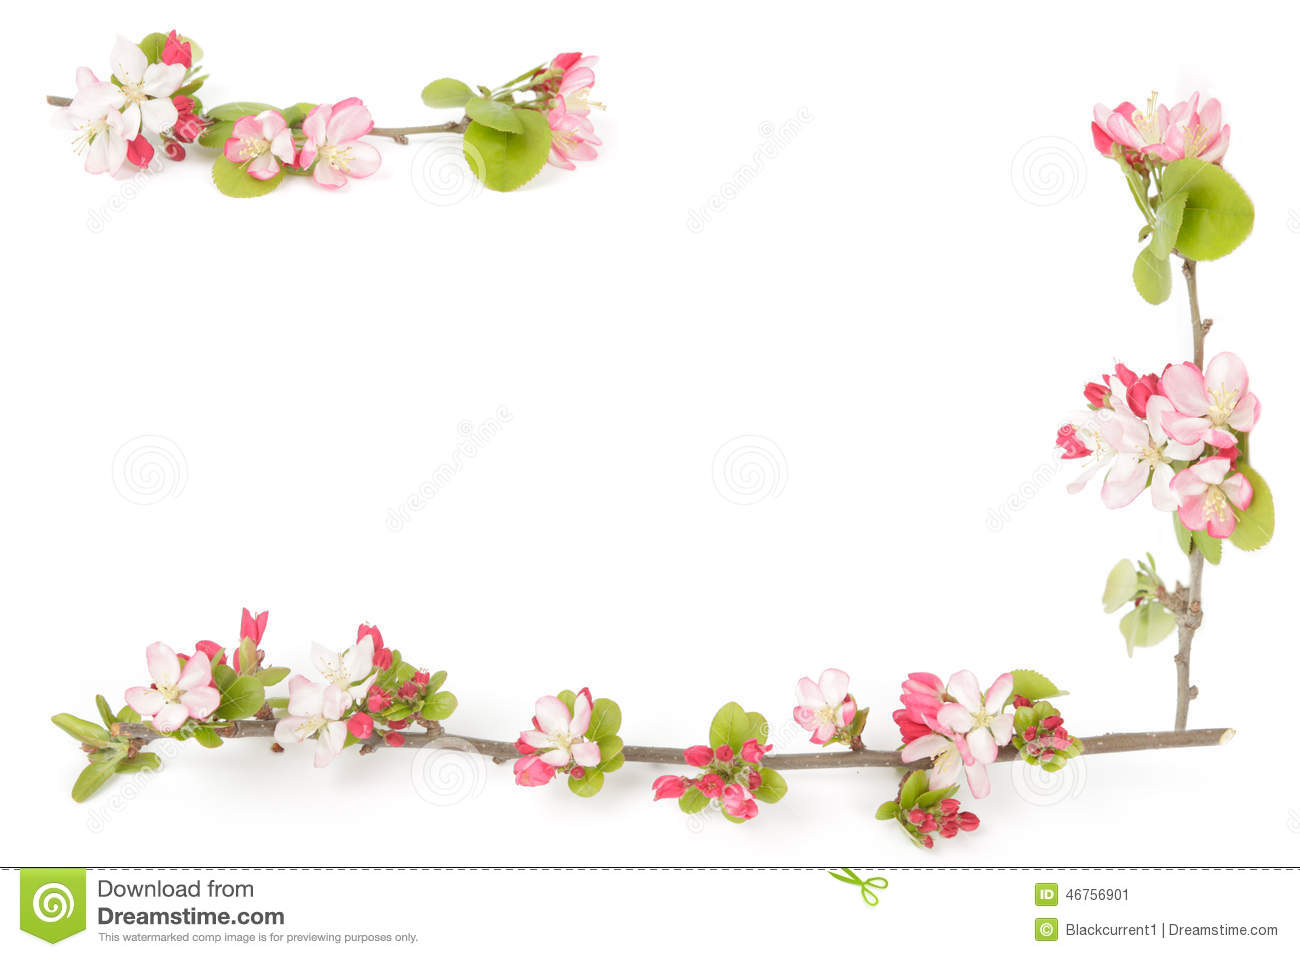 boarder of crabapple flowers stock image image of white bloom